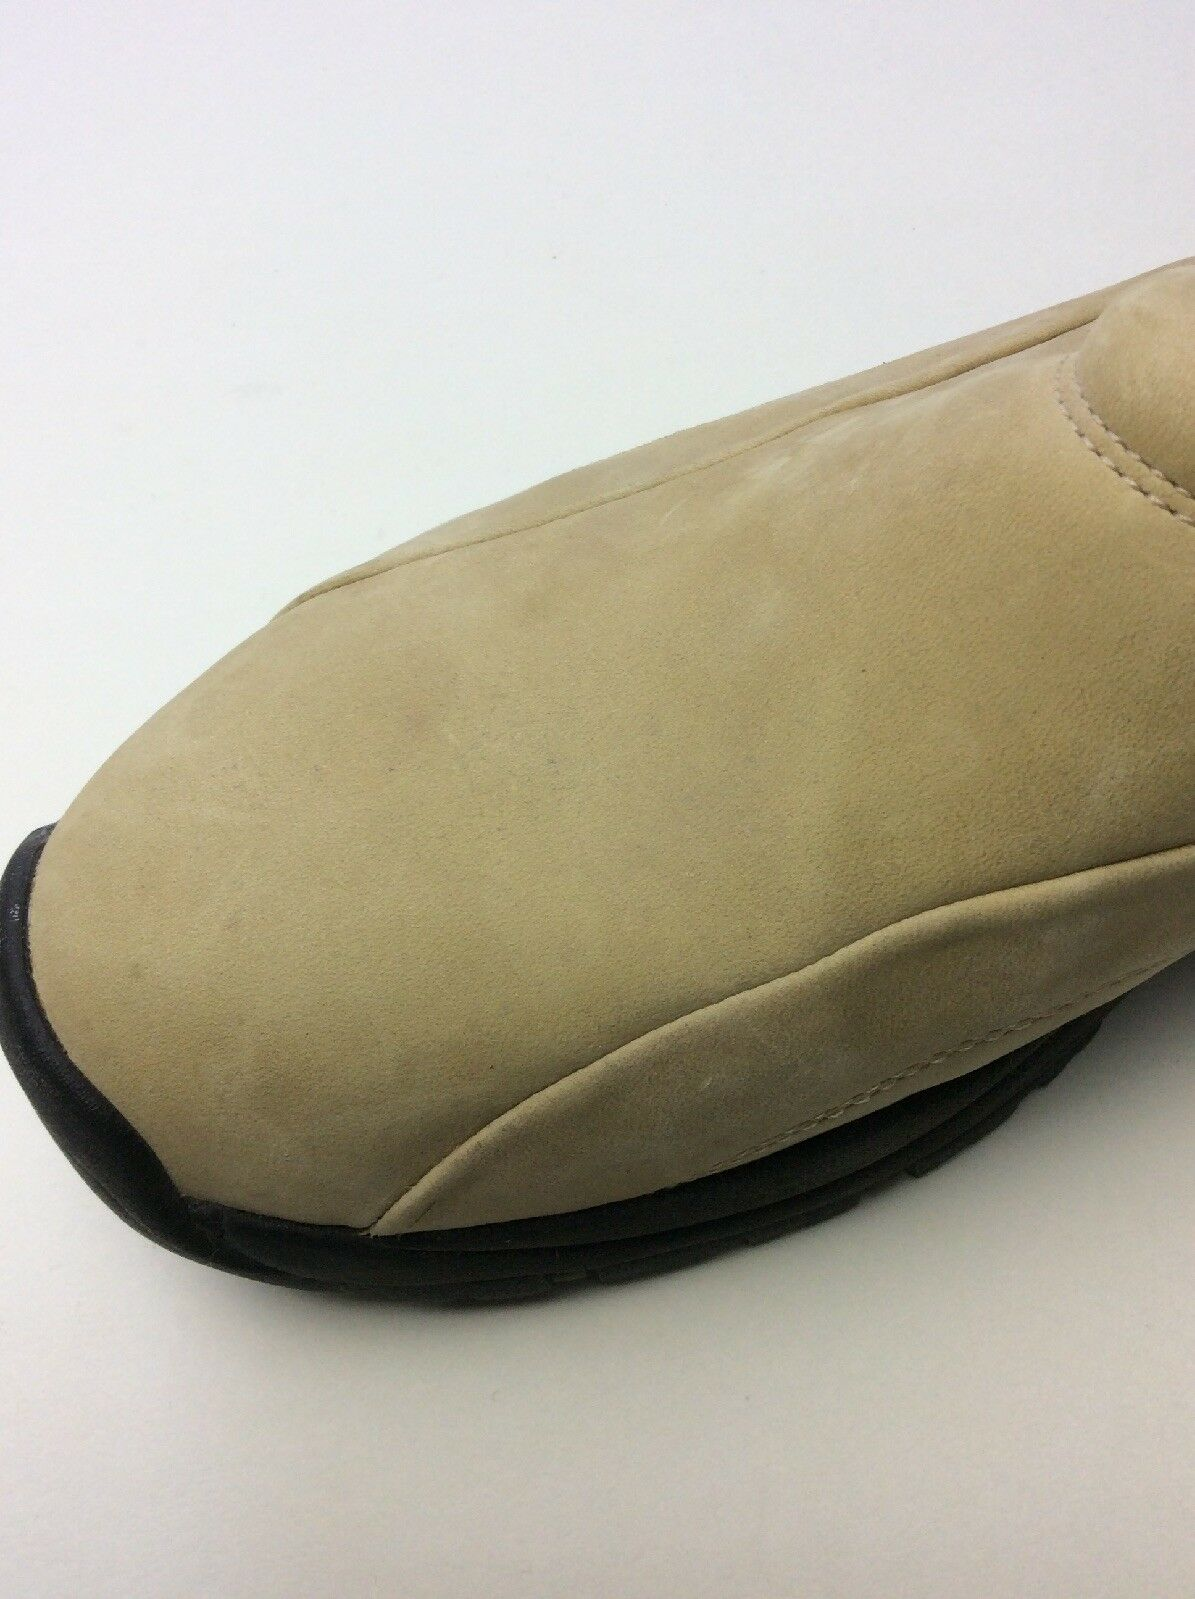 Bass Spunky II Hiking Mocs donna Dimensione 11M Tan Tan Tan Suede Slip-On Loafer Moccasin 6897df